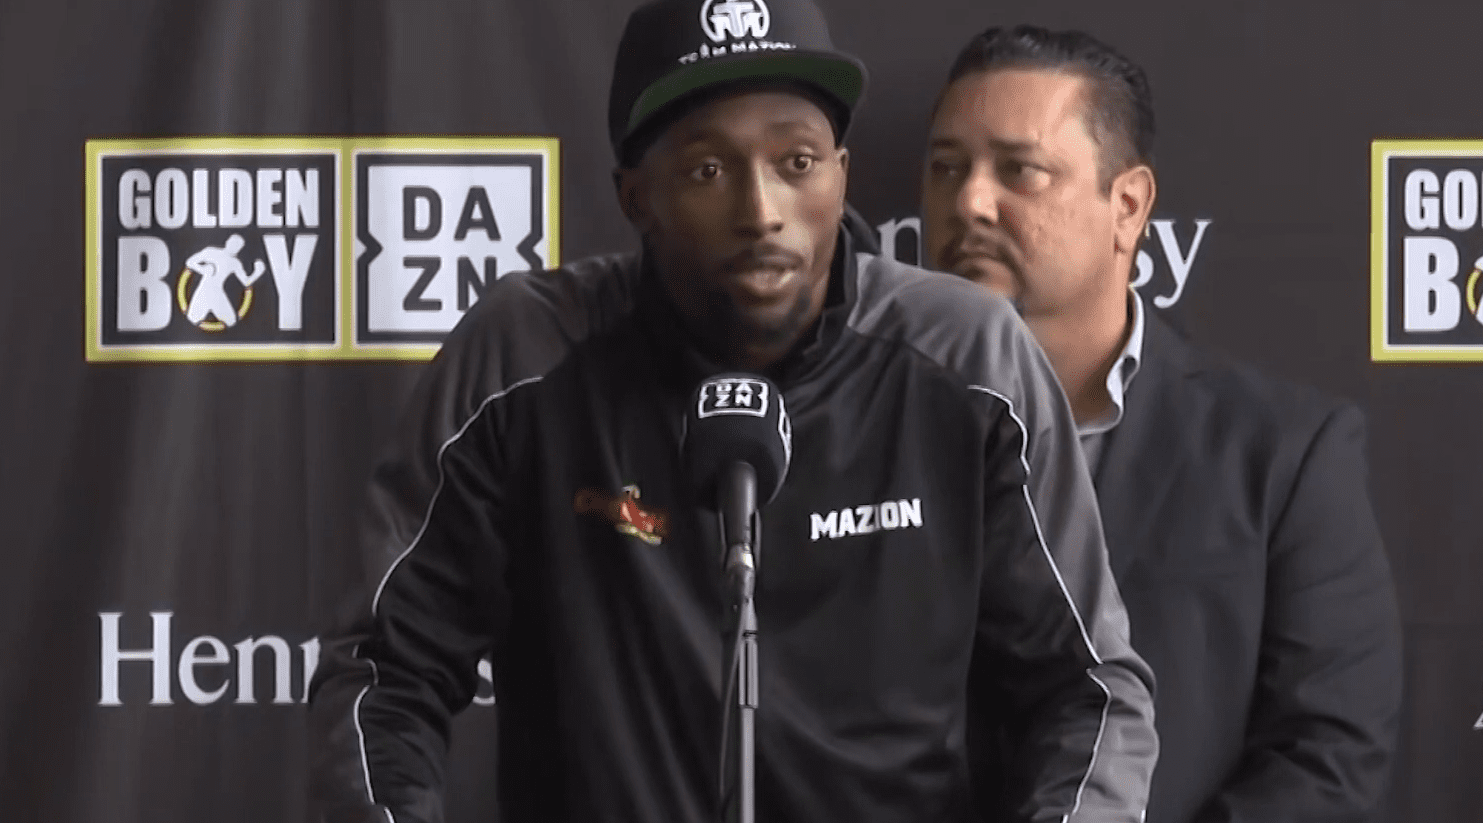 Travell Mazion during an interview. | Photo: YouTube/ BoxingWorldWeekly